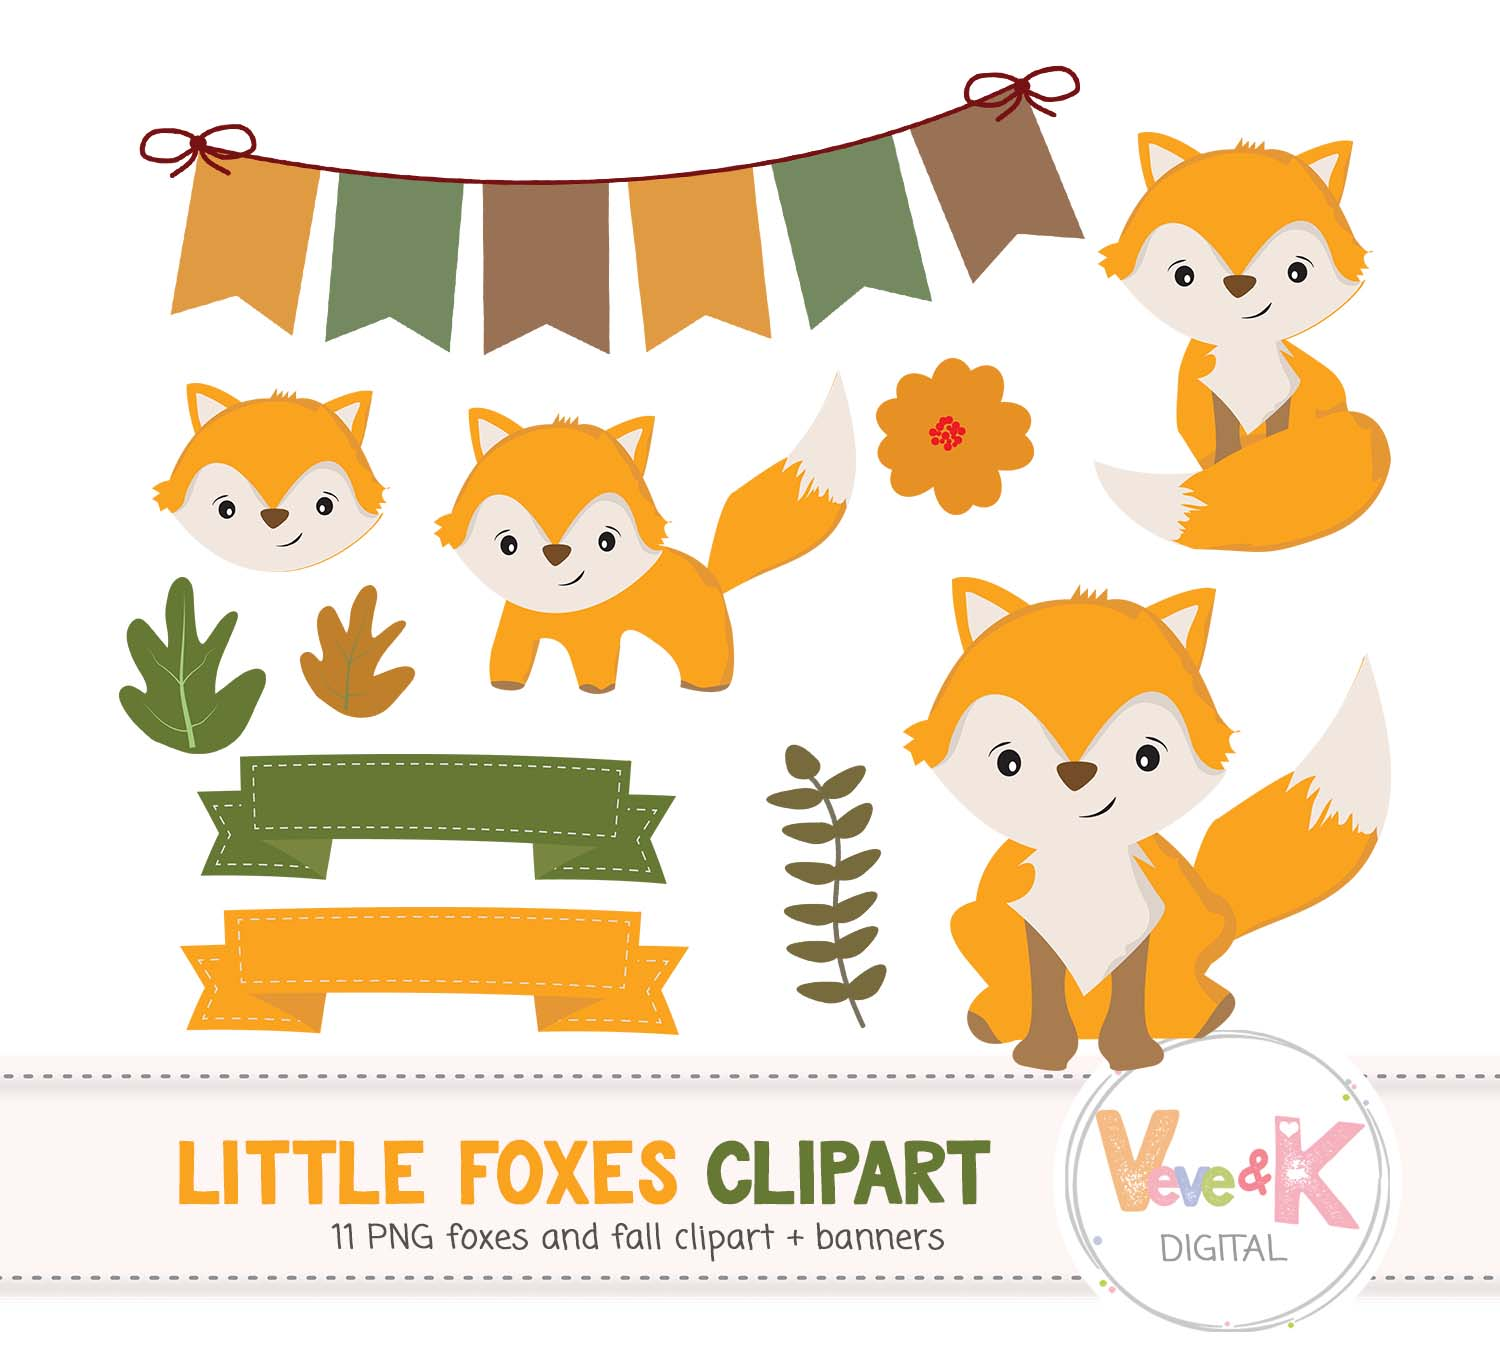 Woodland animal clipart frames clipart black and white download Fox Clip Art, Cute Fox Clipart, Little Foxes Clipart, Forest Creatures,  Forest Critters, Woodland Animals Clipart, Foxes, clipart black and white download